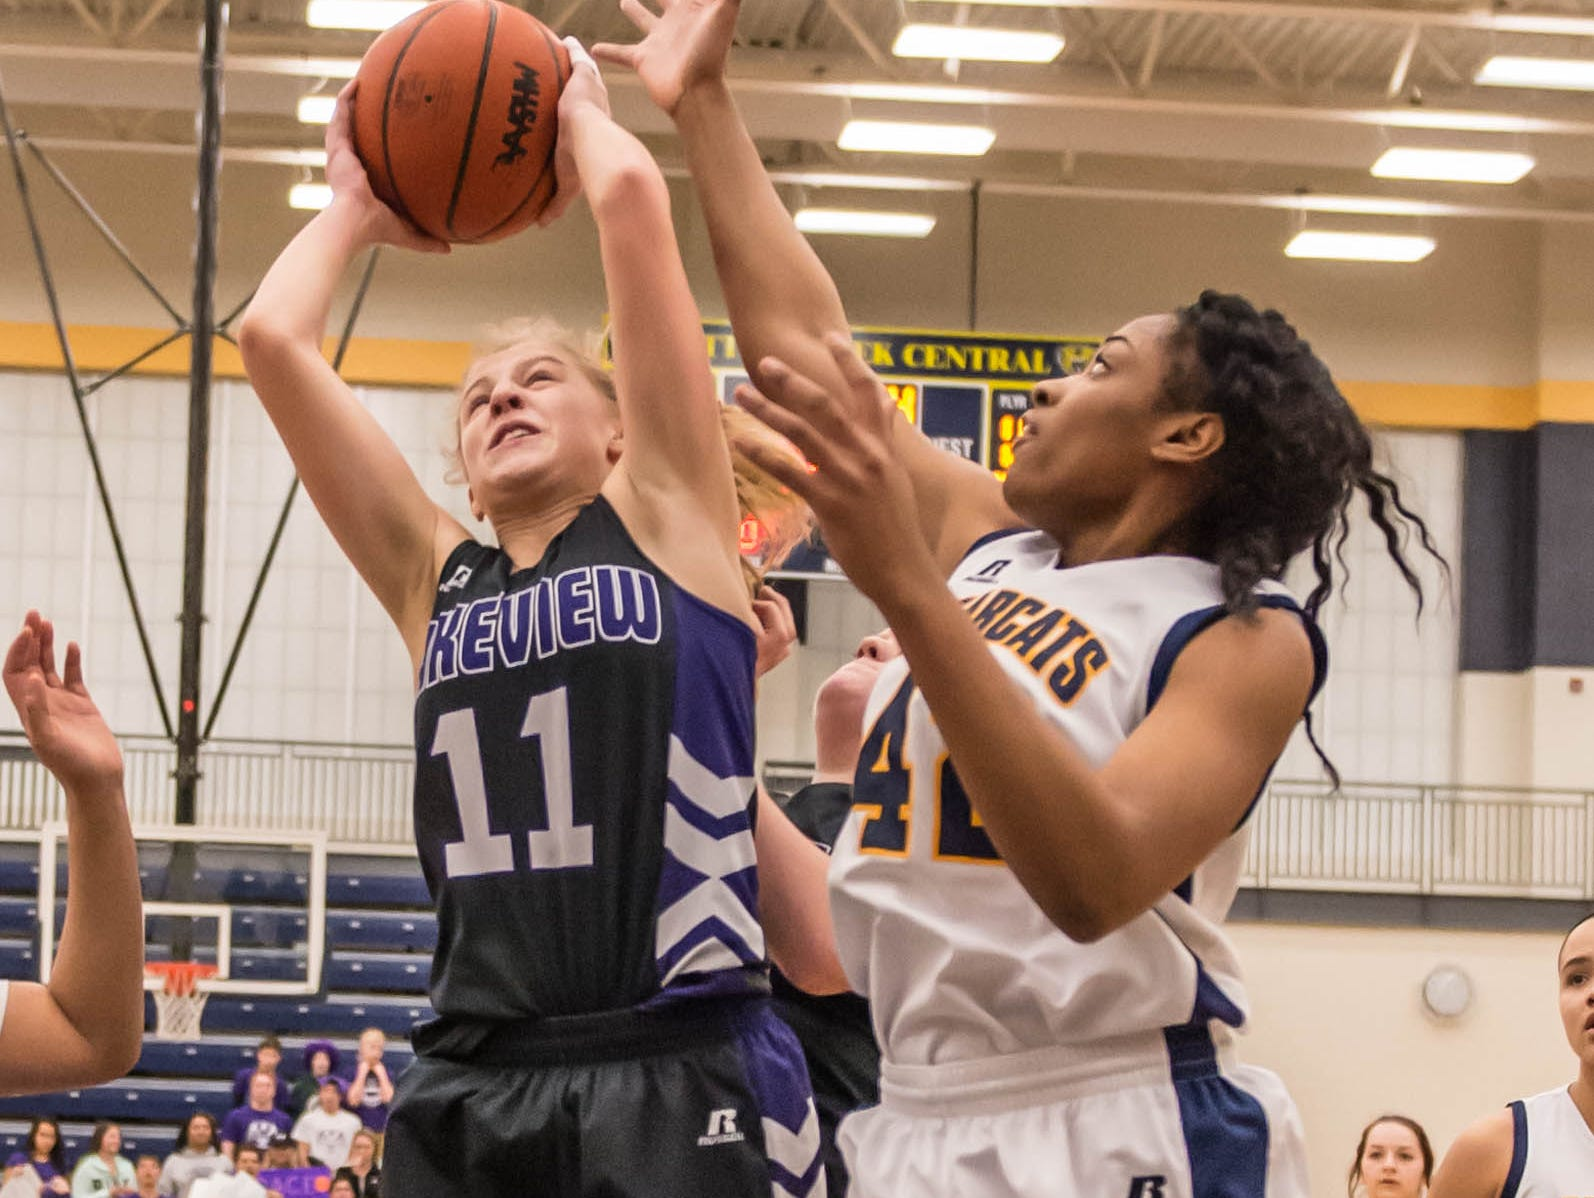 Lakeview's Ava Cook (11) goes for the hoop while being guarded by Battle Creek Central's Jamesha Smith (42) during district finals Friday evening.